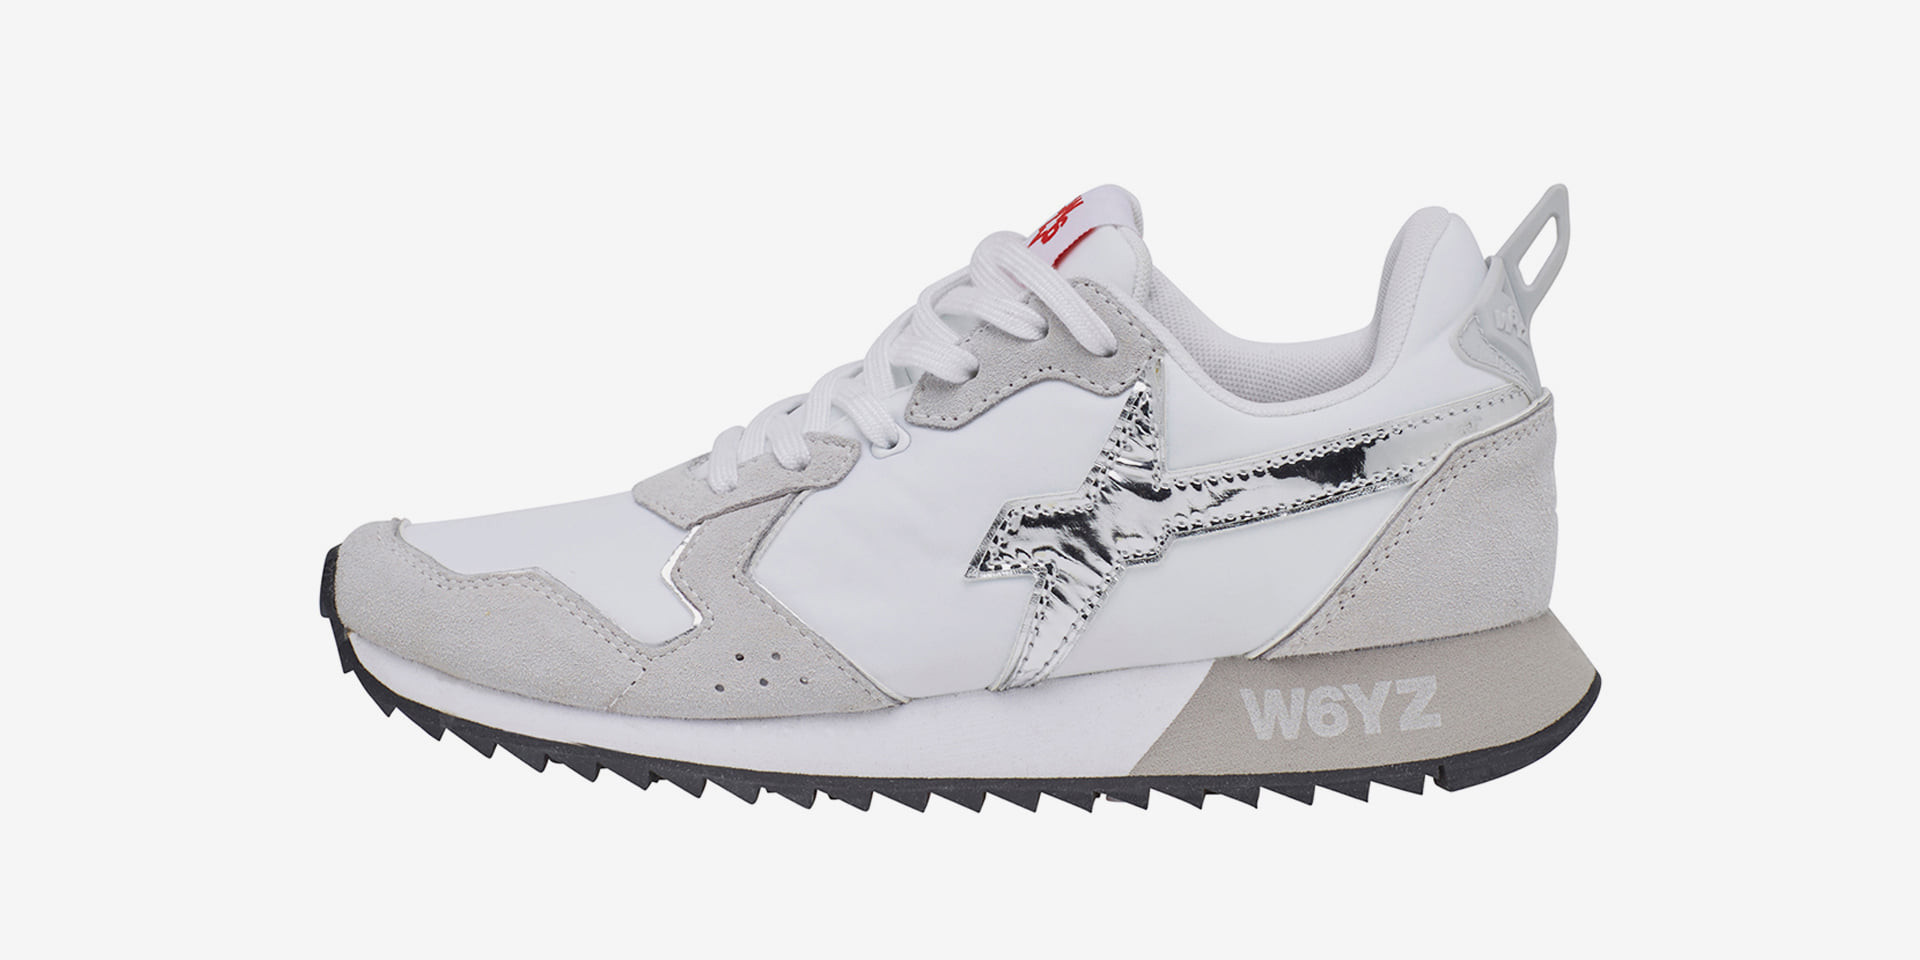 JET-W. - Leather and nylon sneakers - White/Silver